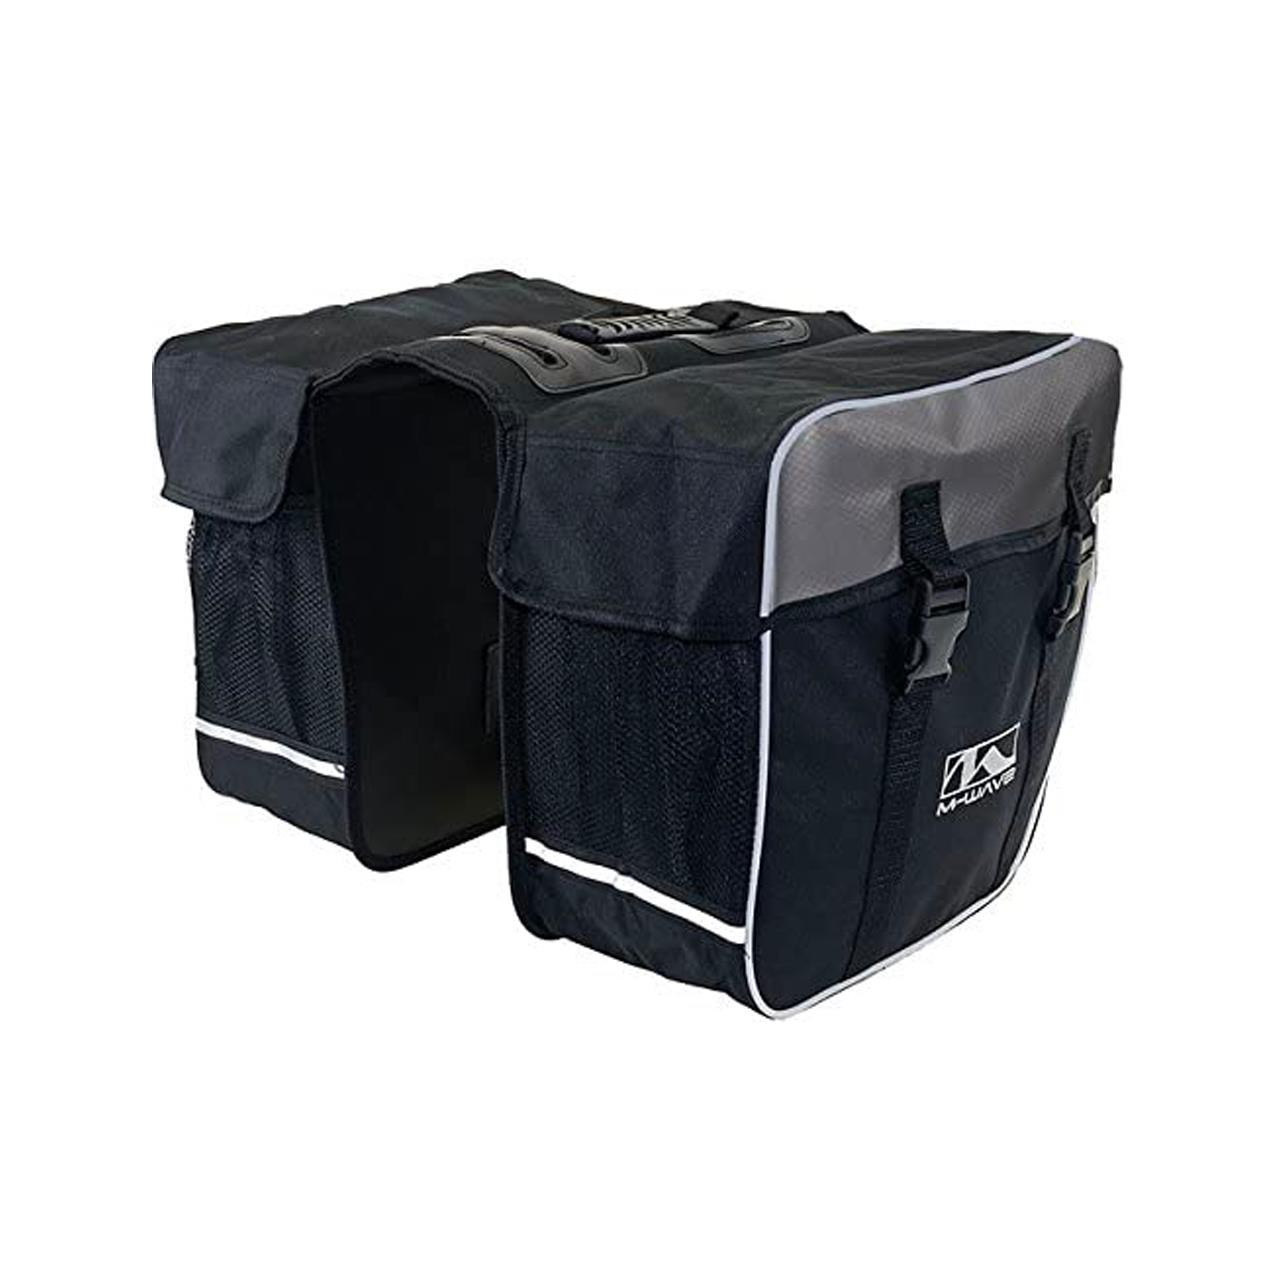 "M-Wave""Day Tripper"" Double Pannier (With Reflective Strips)"